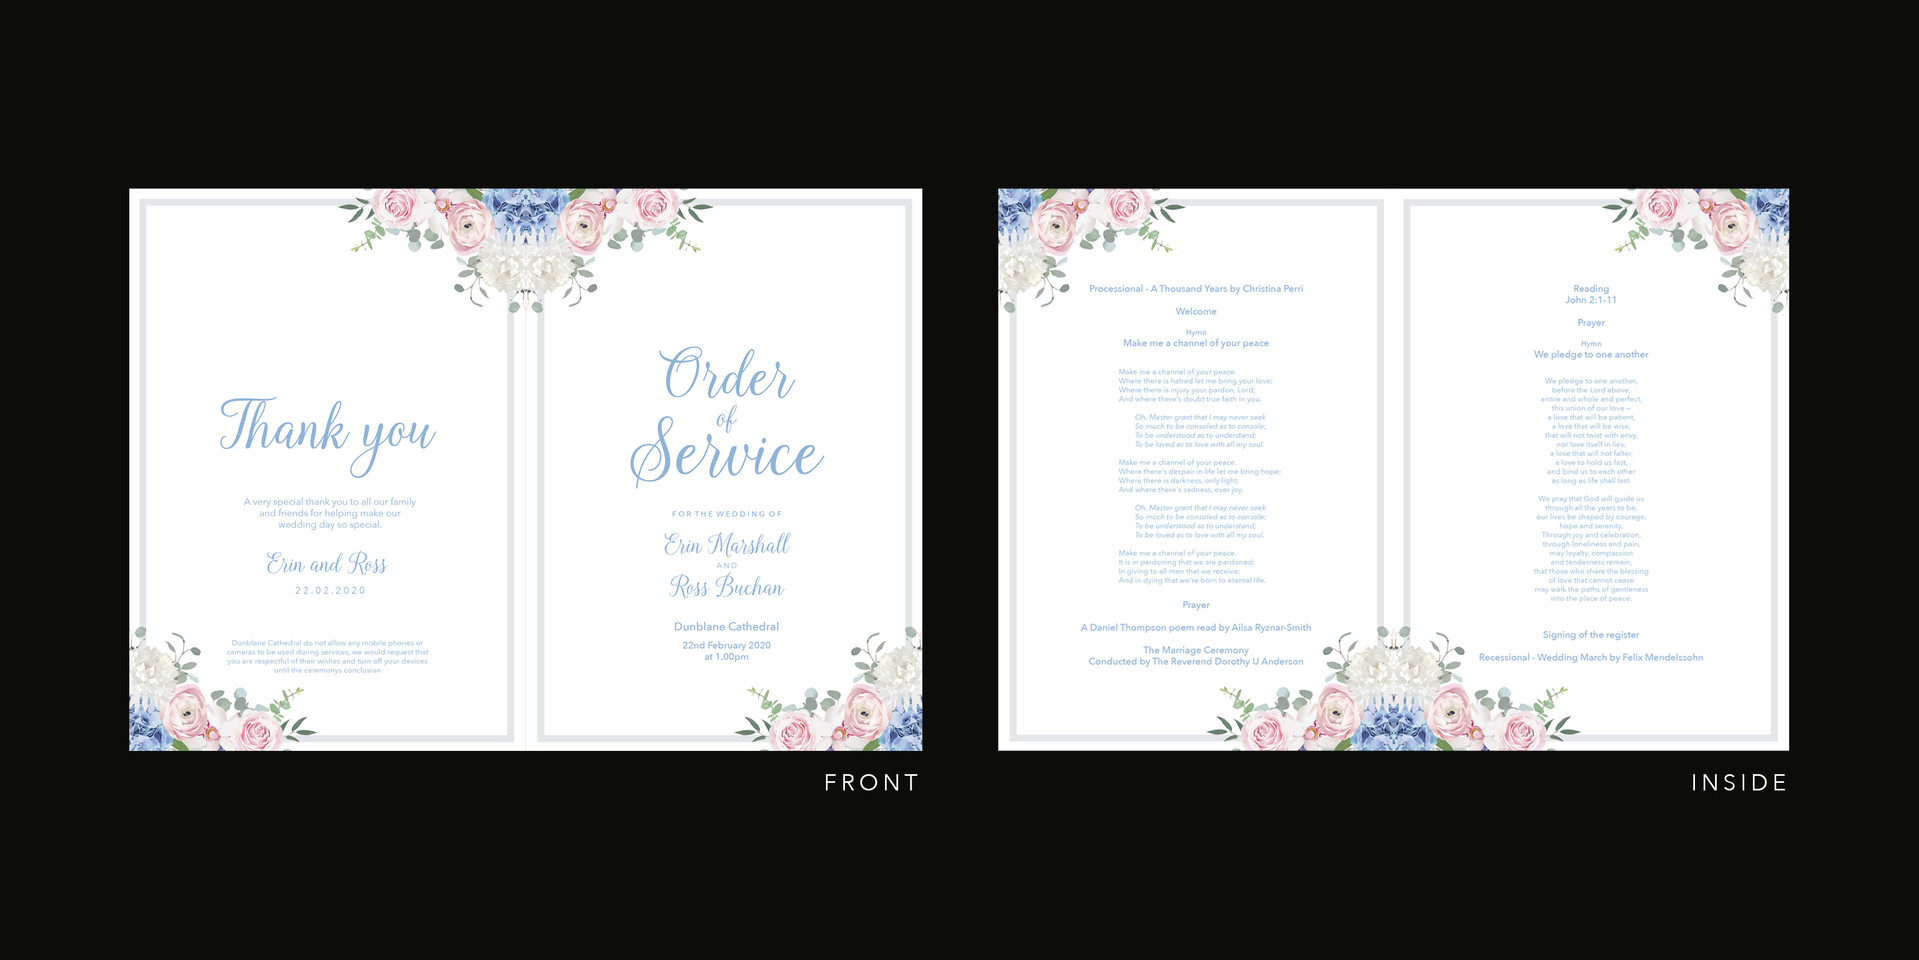 Order of Service Pink & Blue Flowers